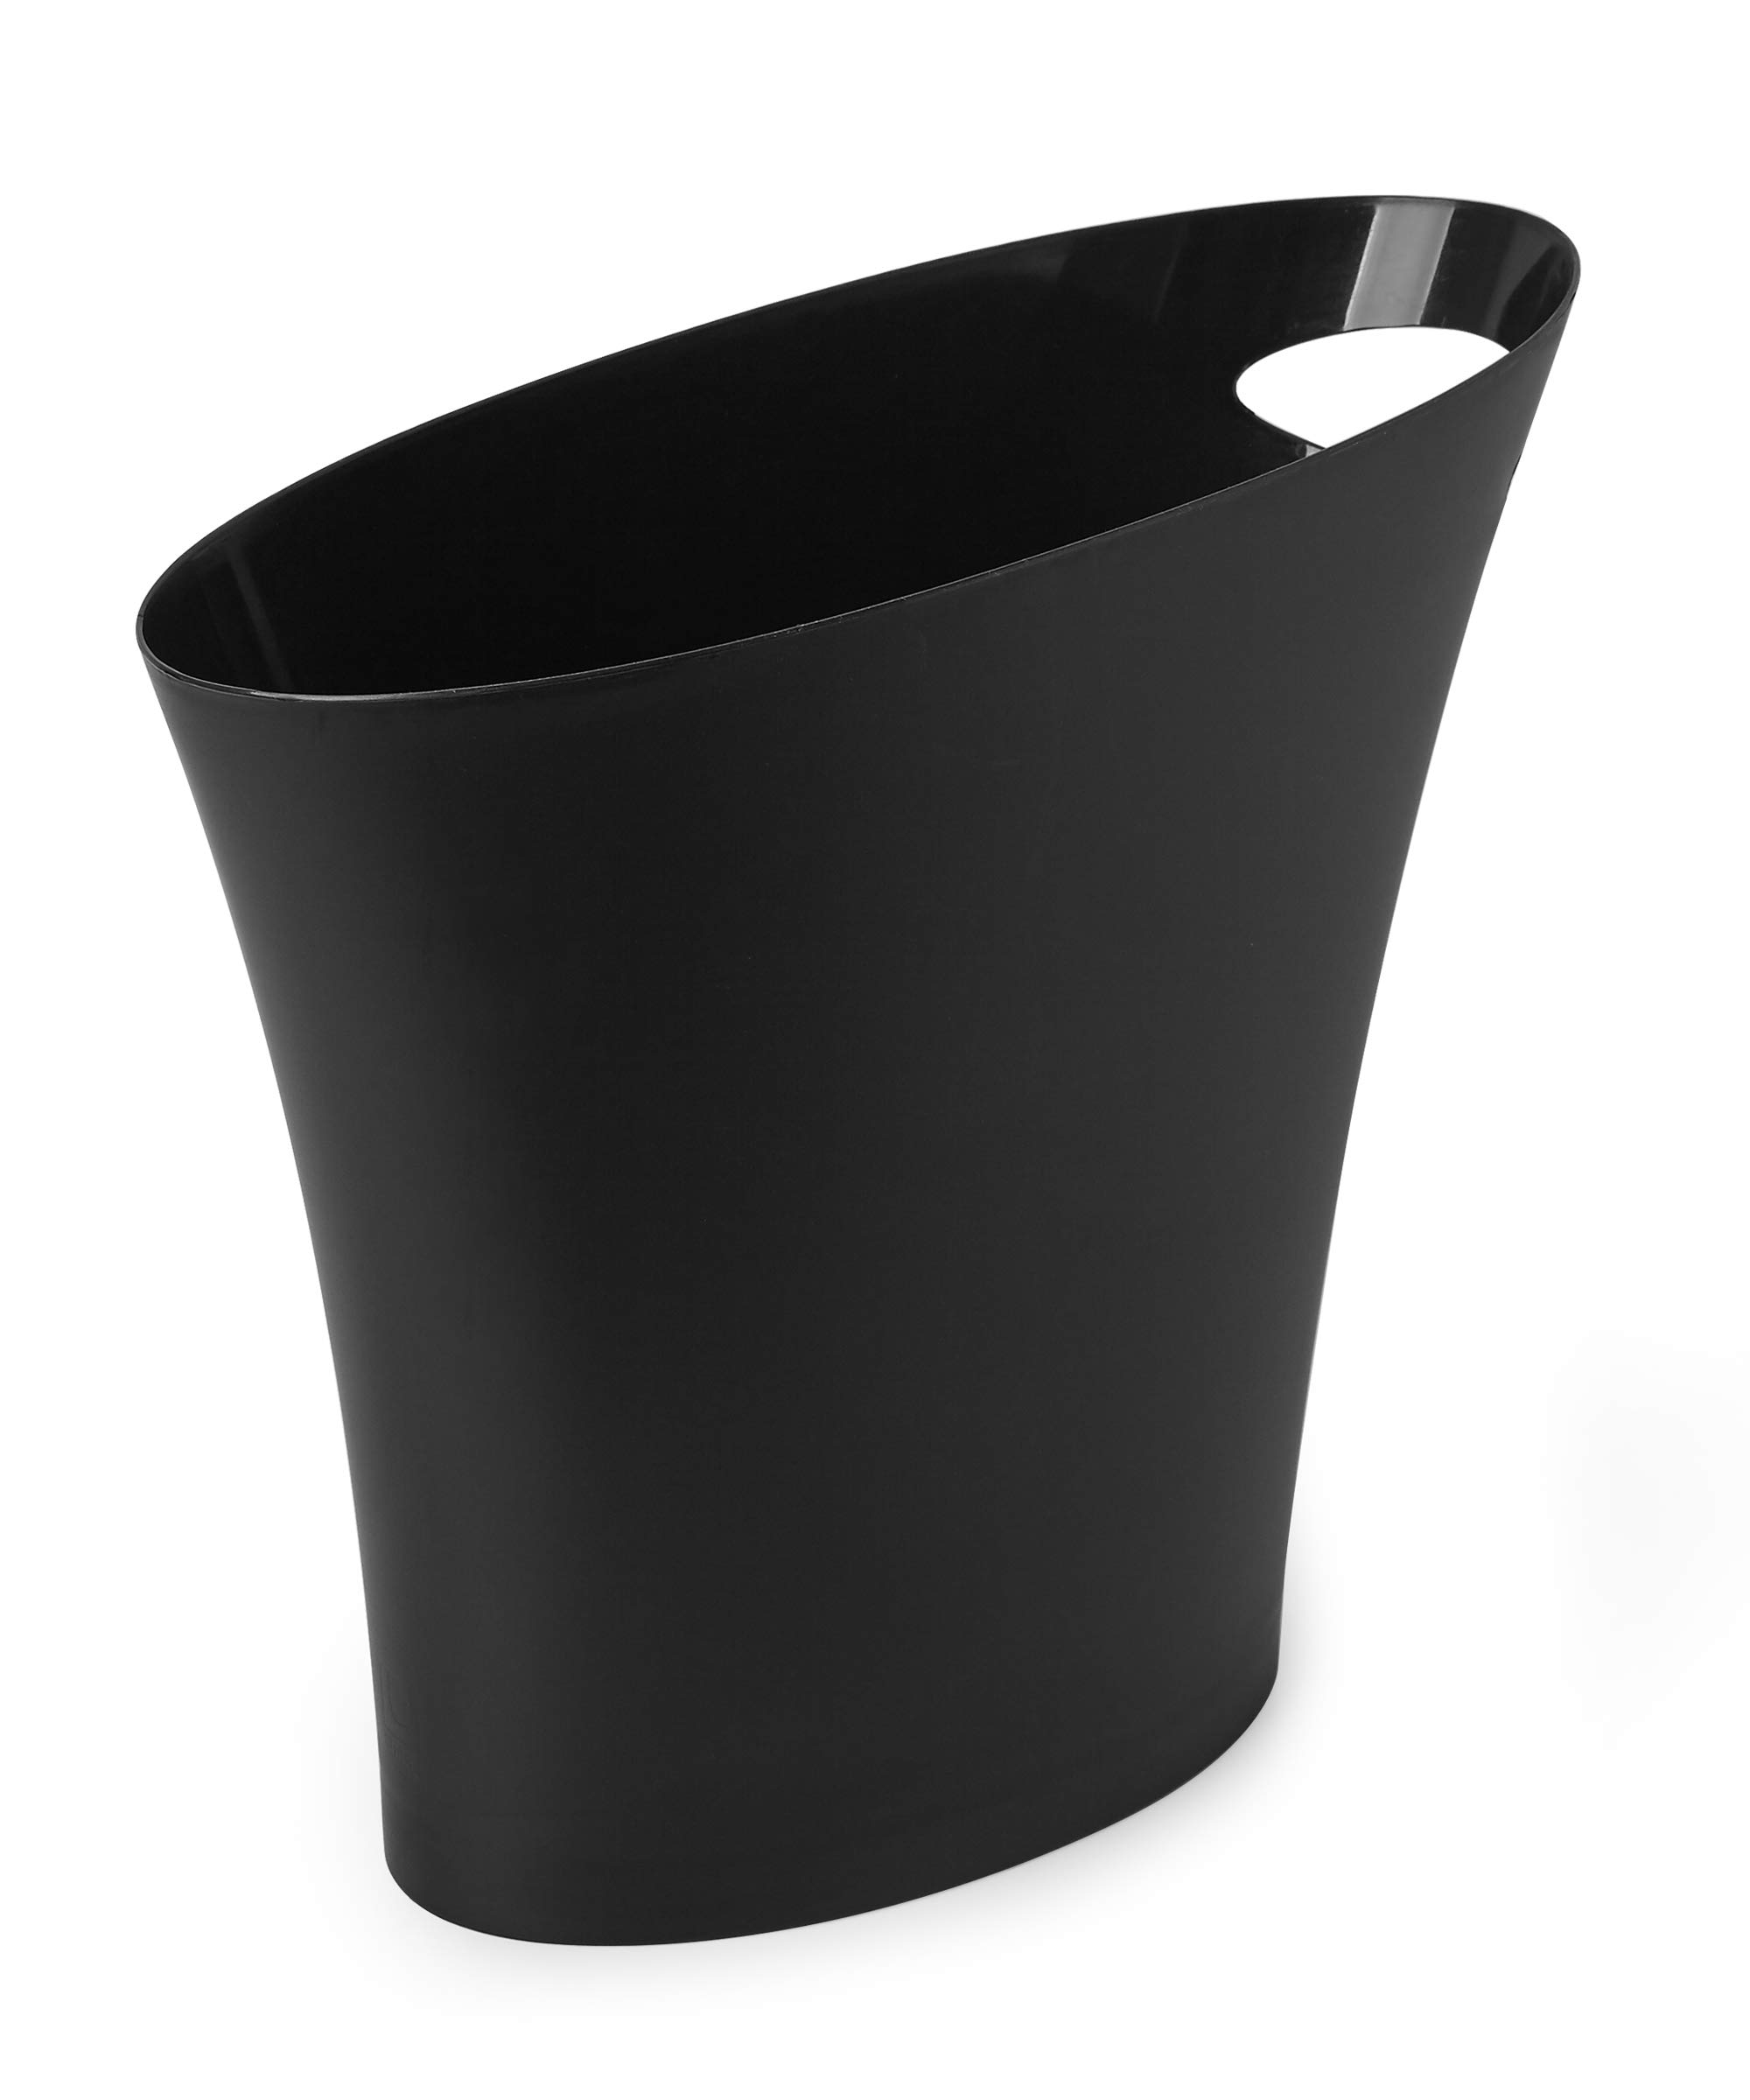 Umbra Skinny 6 FITS ALMOST ANYWHERE: A stylish trash can with a modern slim design that looks great and easily fits into narrow openings and odd spaces in your bathroom, bedroom or office CLEVER DESIGN: Despite its narrow profile, Skinny trash can hold up to 2 gallons and features an integrated handle for easy transport and disposal of contents making it an ideal trash can for bathroom DURABLE & EASY TO CLEAN: Made of super-strong polypropylene, Skinny trash cans are durable, easy to wipe clean with a damp cloth, and features a rounded bottom with no crevices for dirt, grime, or liquids to get trapped in